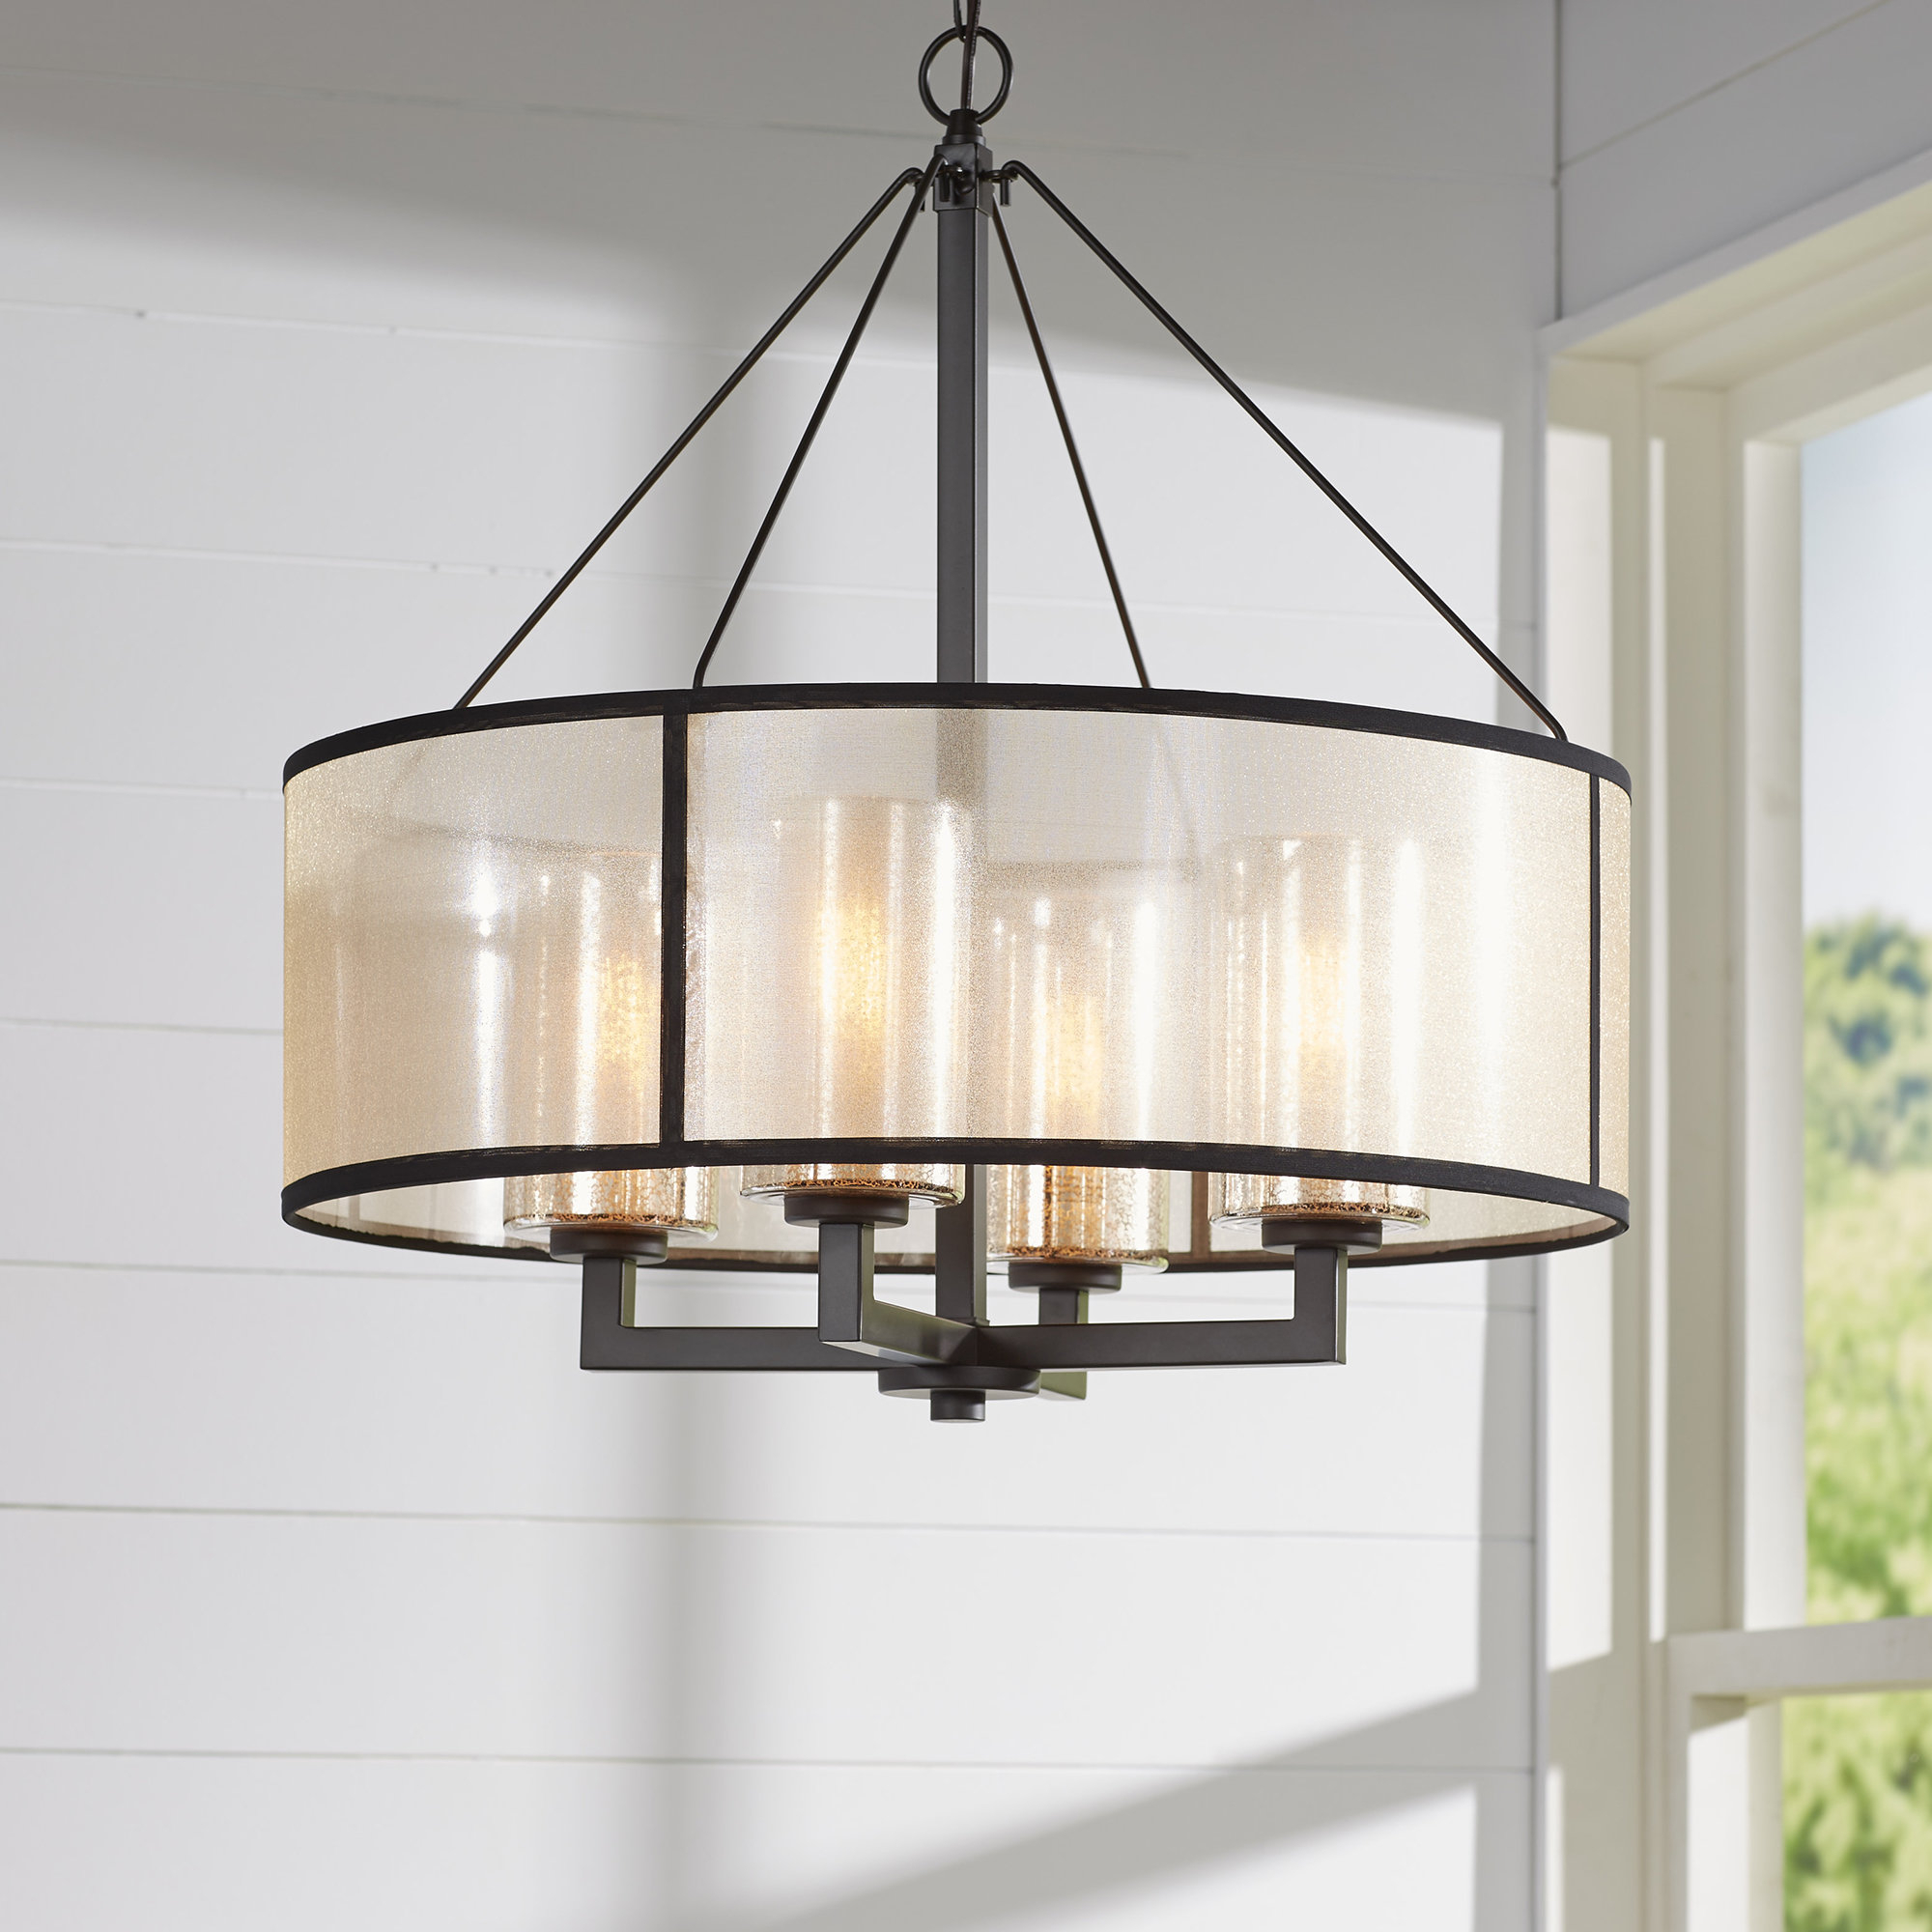 Dailey 4 Light Drum Chandeliers For Popular Dailey 4 Light Drum Chandelier (Gallery 1 of 25)